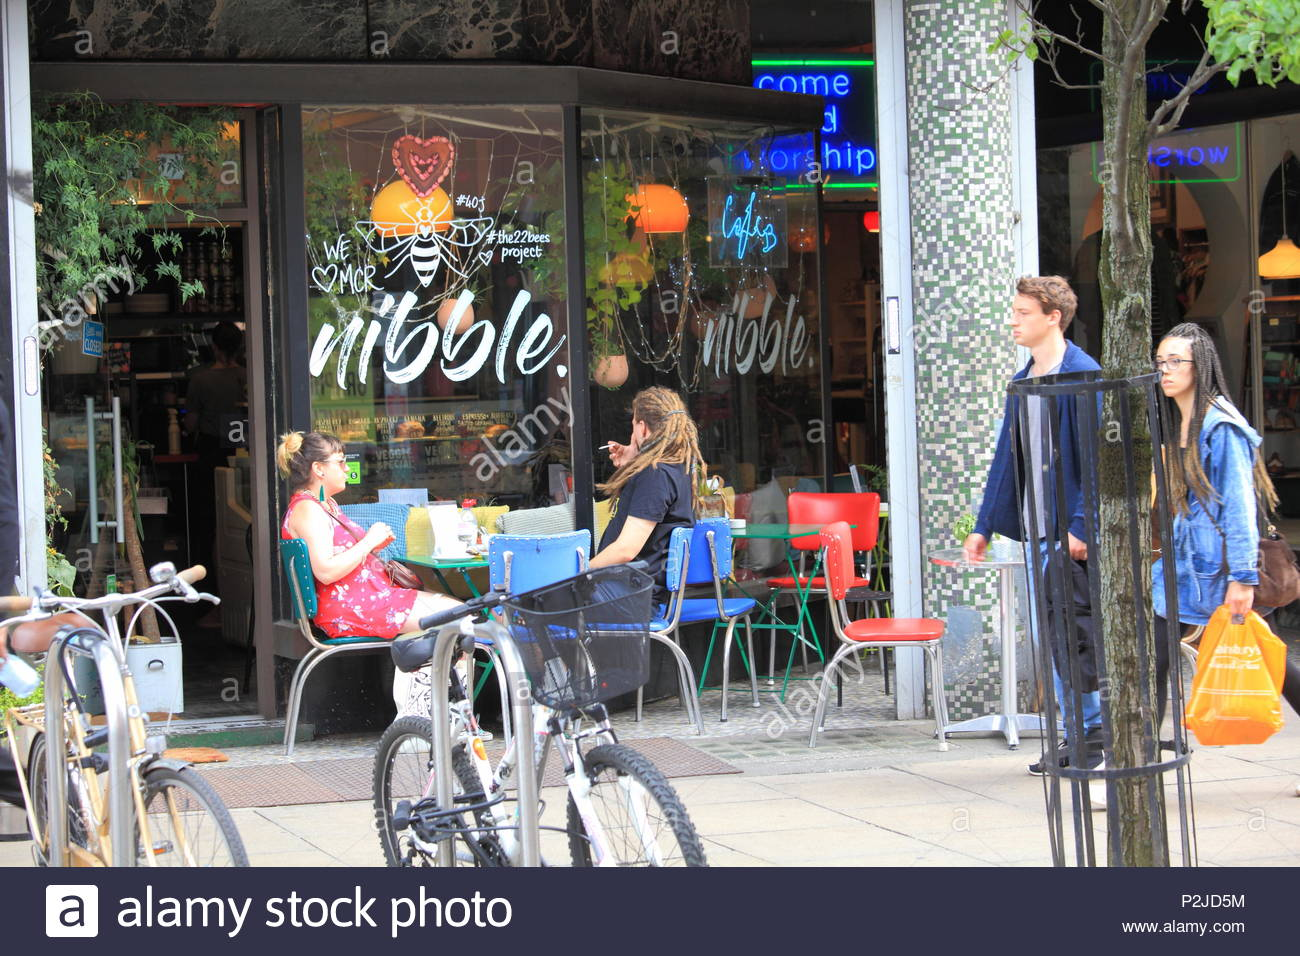 A Man With Dreadlock Hairstyle Sits Toking With His Girlfriend At Nibble Cafe Bar at Manchester City Centre, Manchester UK Summer June 2018 - Stock Image